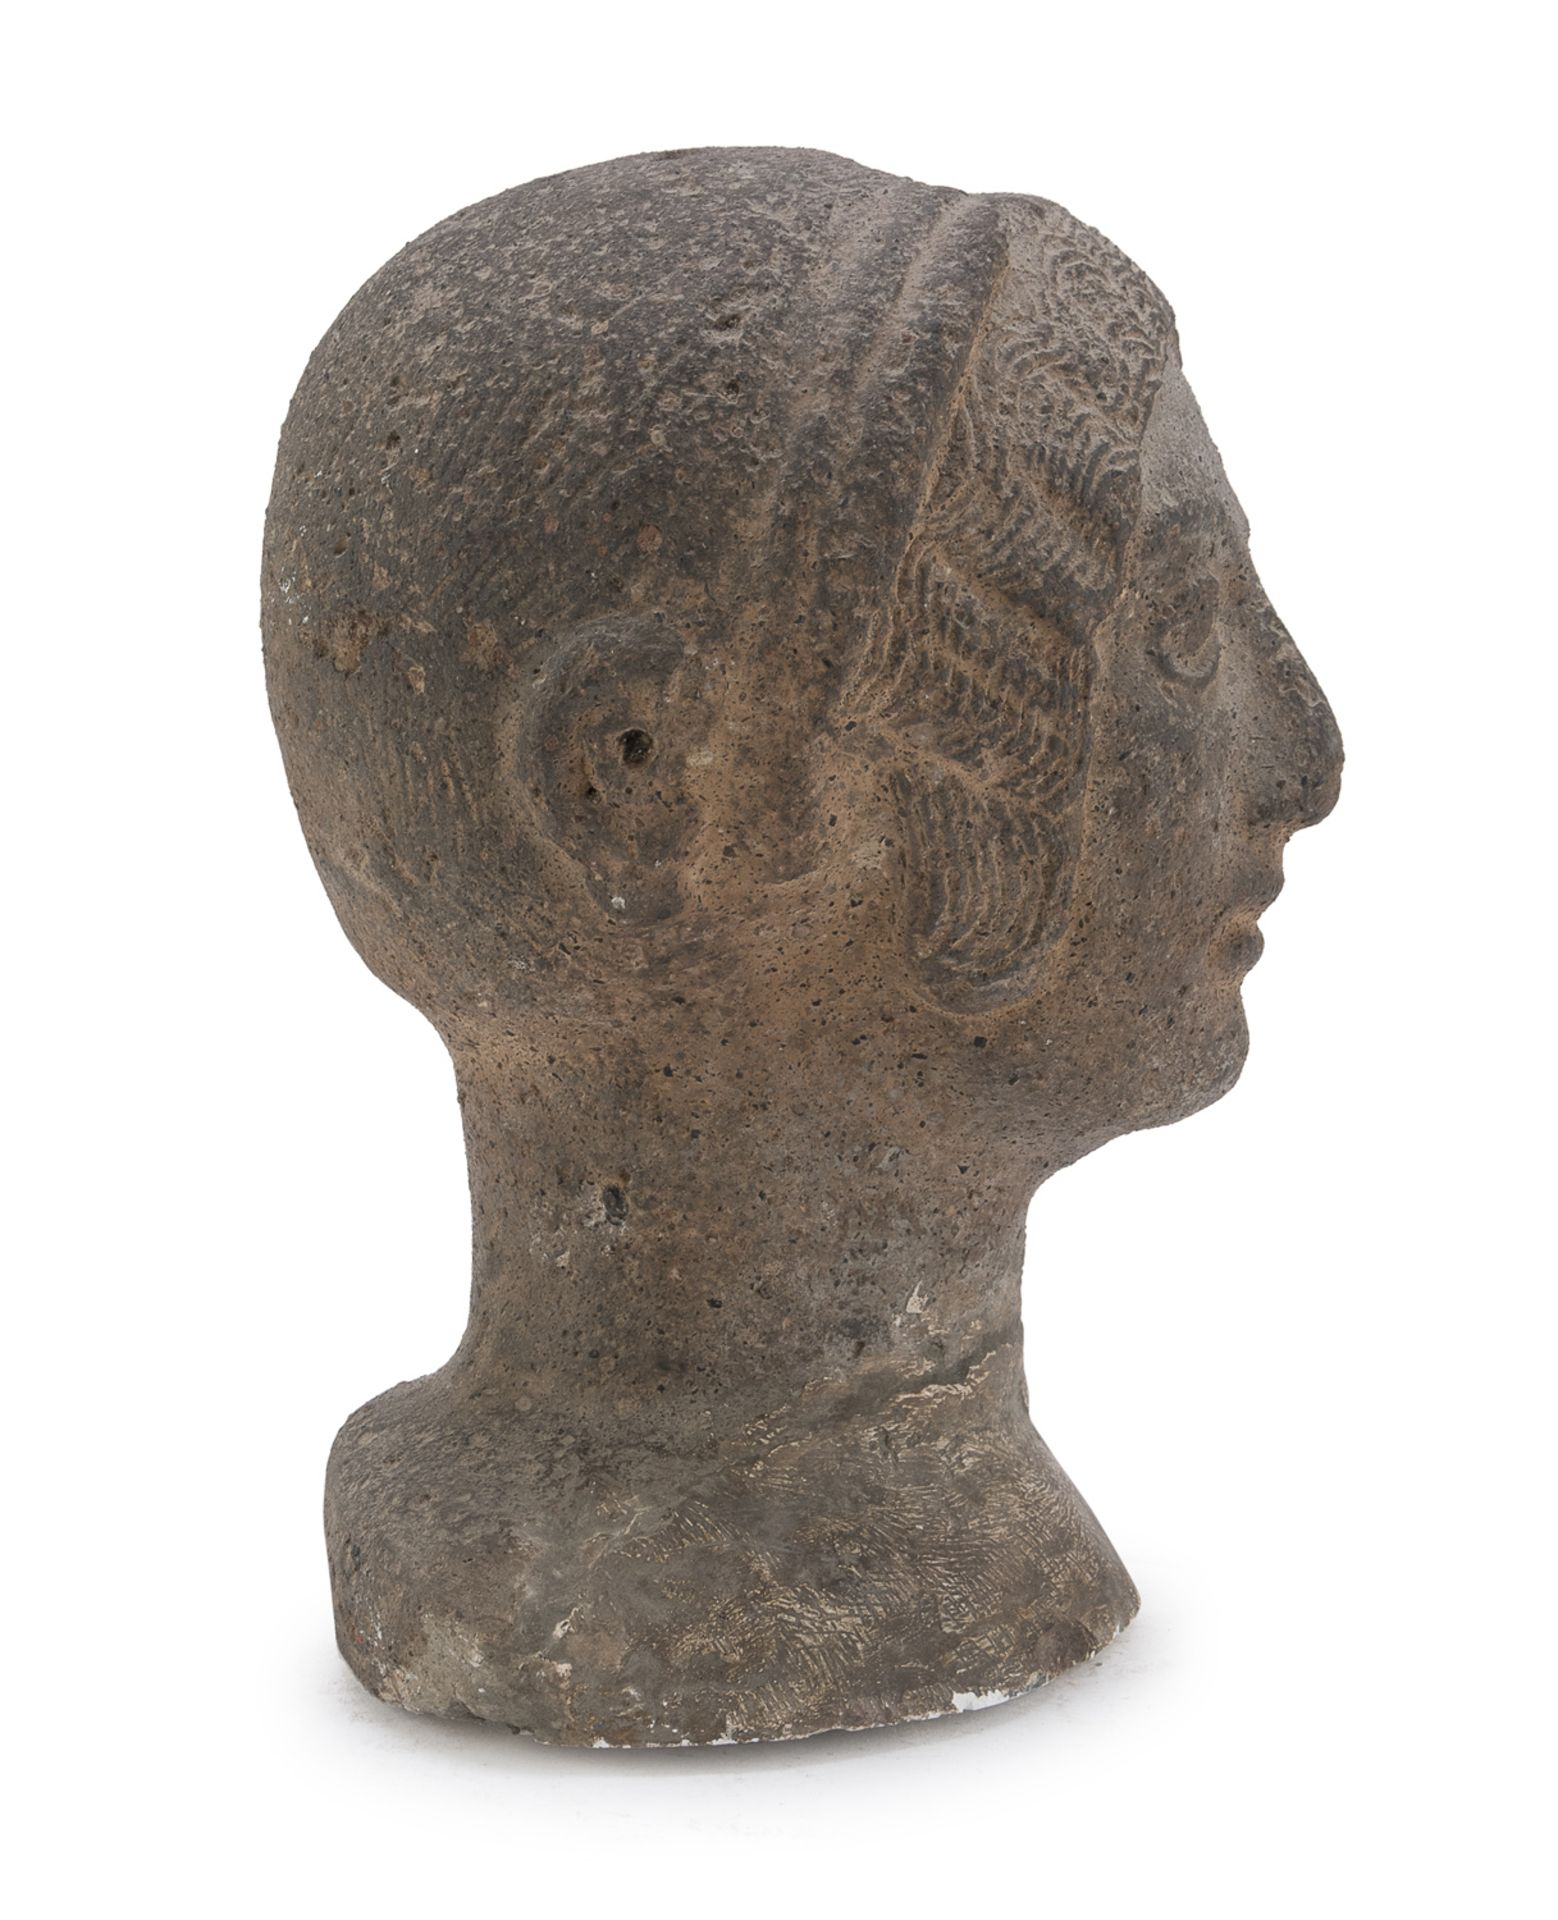 FEMALE HEAD ETRUSCAN STYLE 20th CENTURY - Image 2 of 2